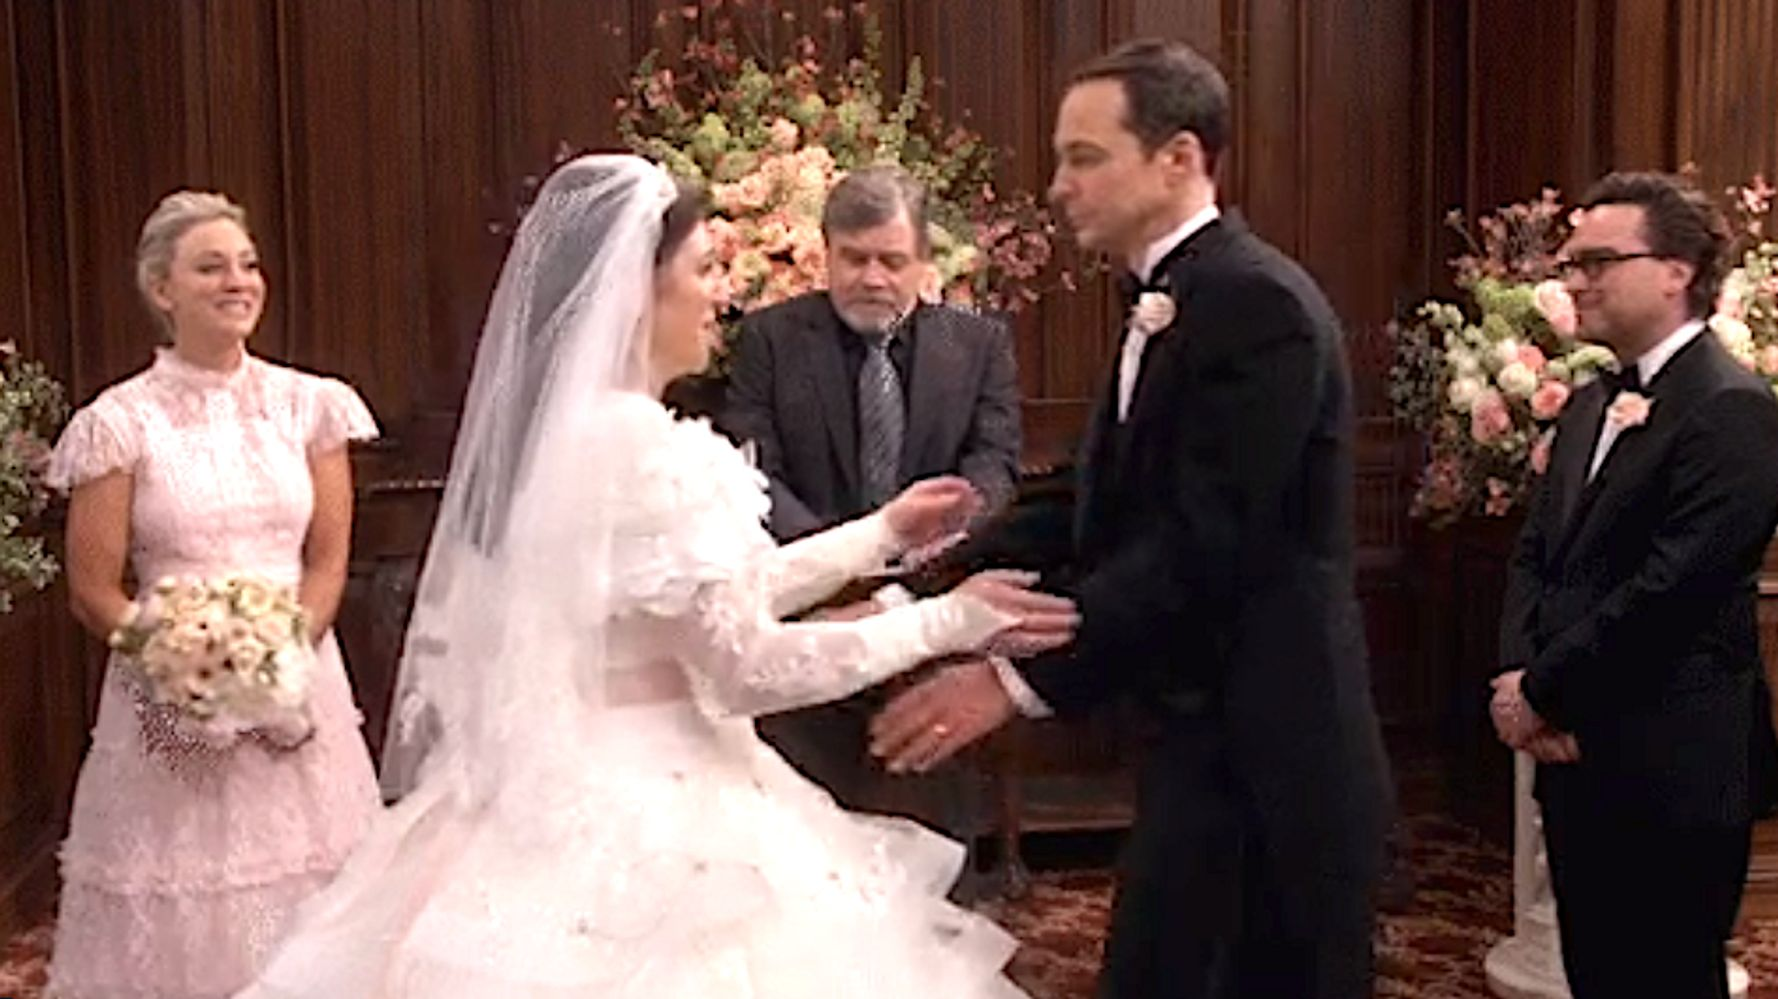 Sheldon And Amy Wedding.Mark Hamill Weds Sheldon And Amy On Big Bang Theory Fans Geek Out